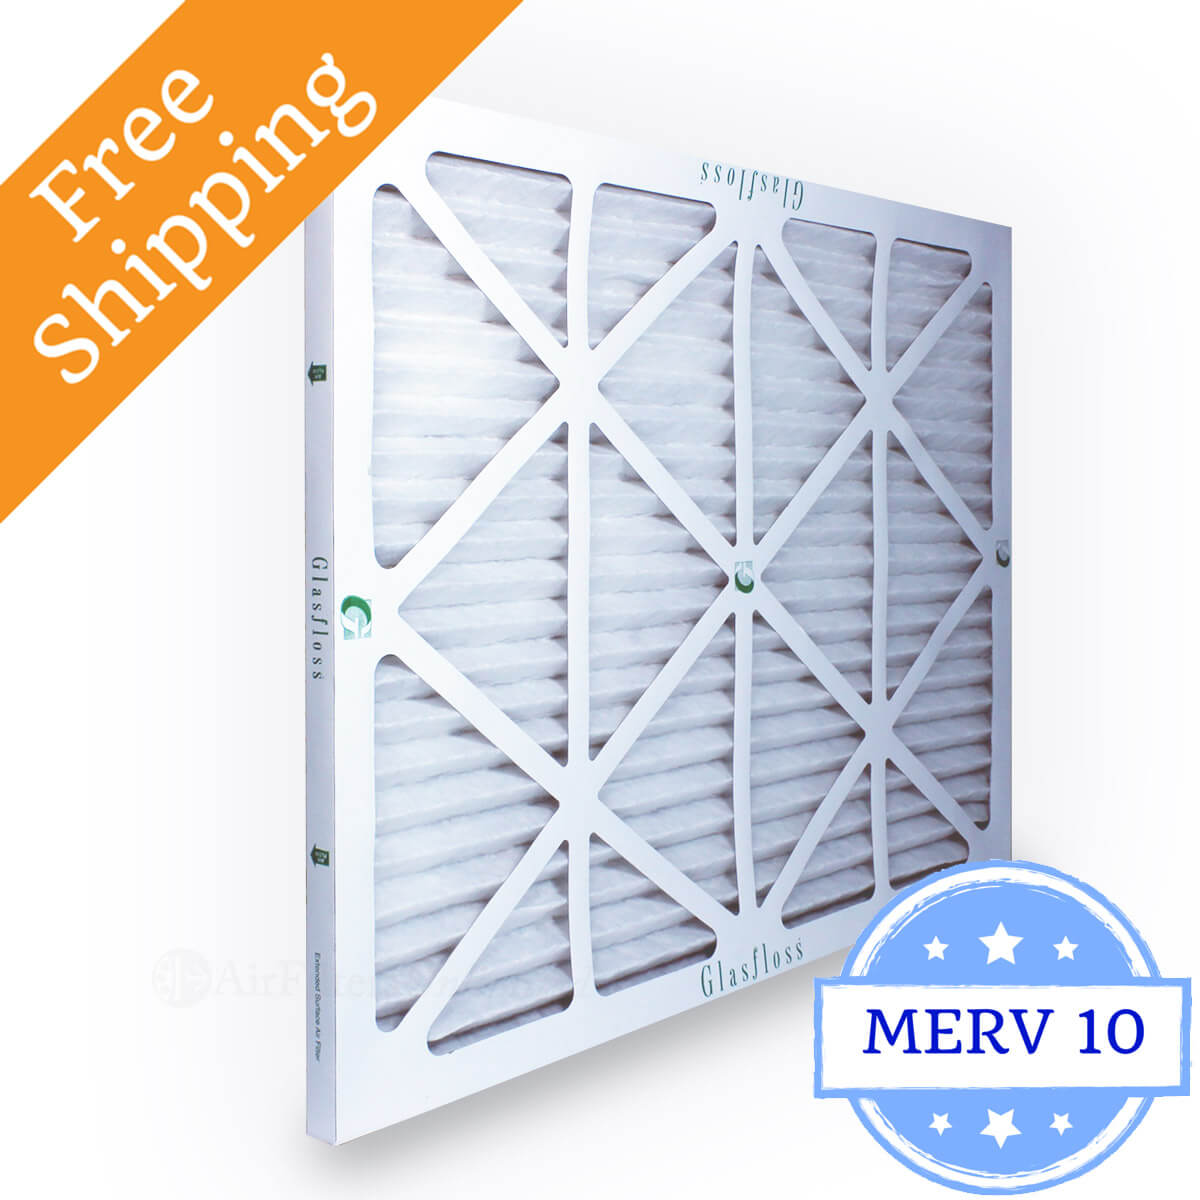 Glasfloss 14x20x1 Air Filter ZL Series